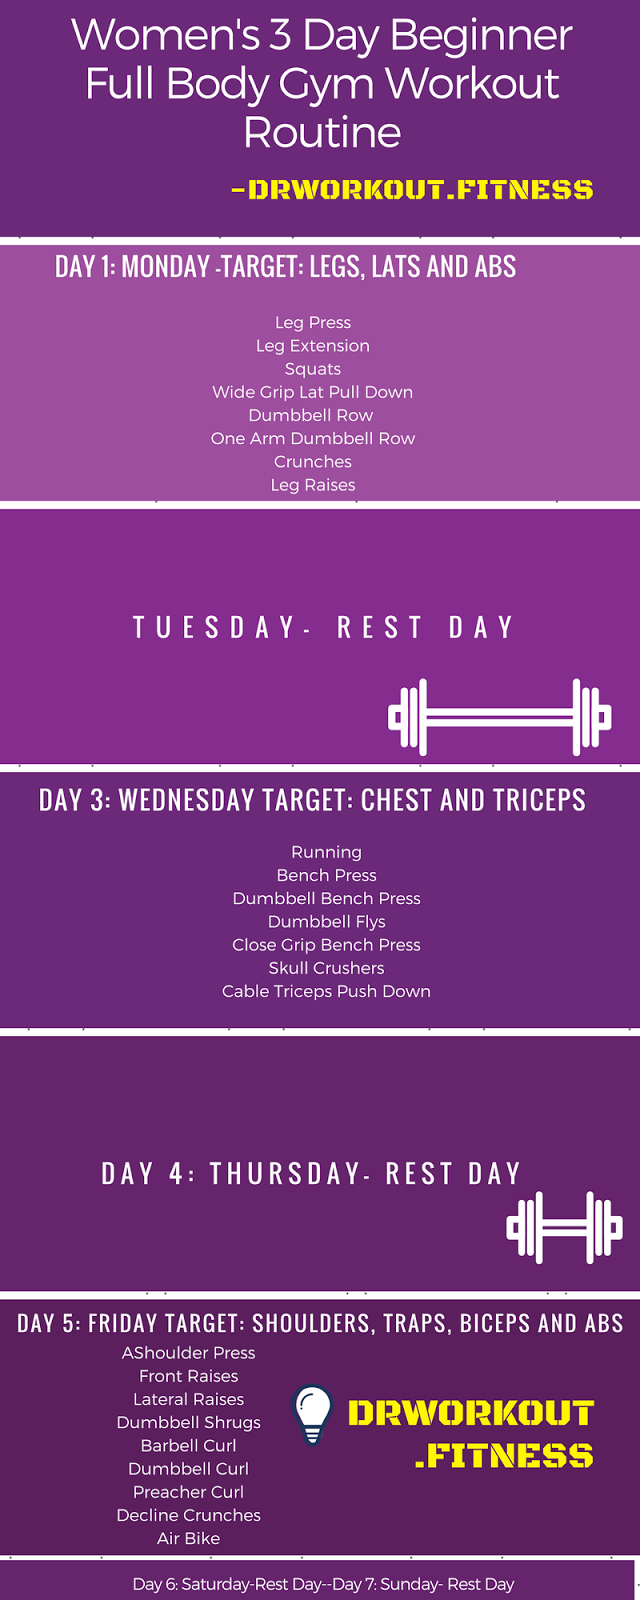 Women's 3 Day Beginner Full Body Gym Workout plan